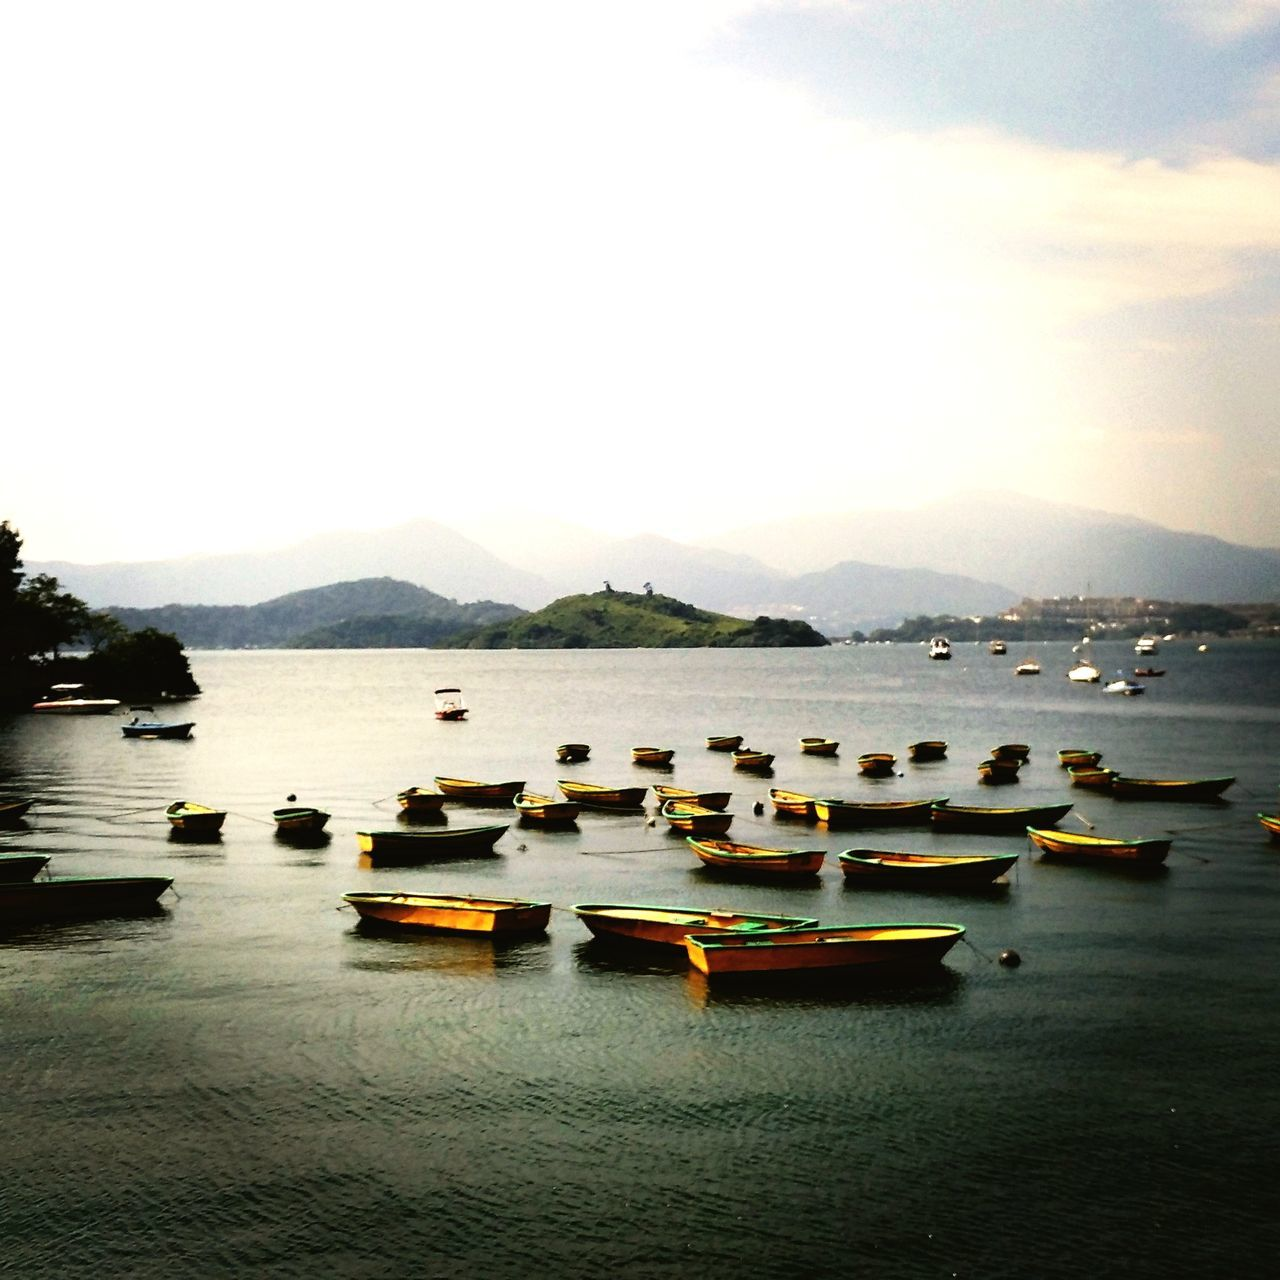 Water Nautical Vessel Mountain Tranquil Scene Tranquility Scenics No People Nature Landscape Sea Travel Destinations Outdoors Day Beauty In Nature Sky Hong Kong Tai Po Hong Kong Nature Hong Kong Nature Trail Breathing Space